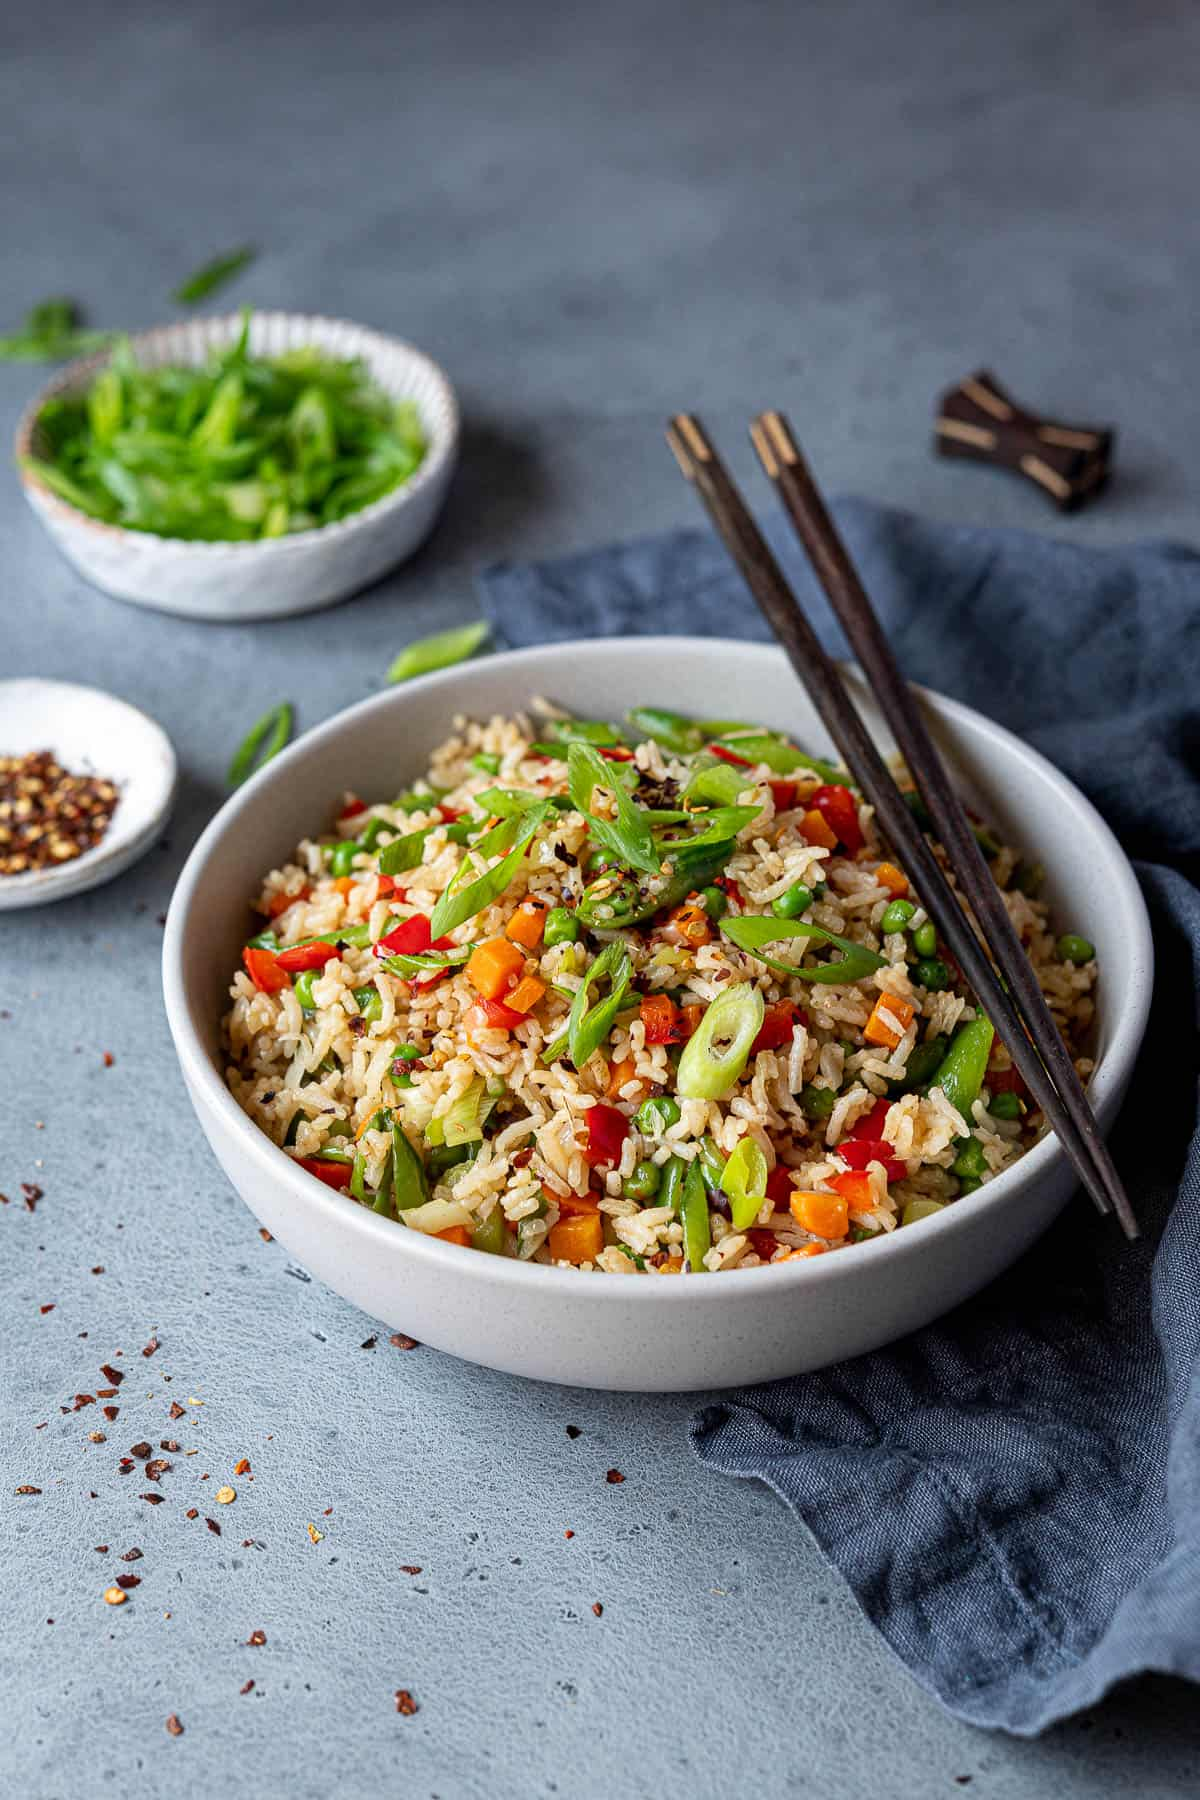 A bowl of vegetable fried rice with chopsticks, a bowl of spring onions and a bowl of chilli flakes.